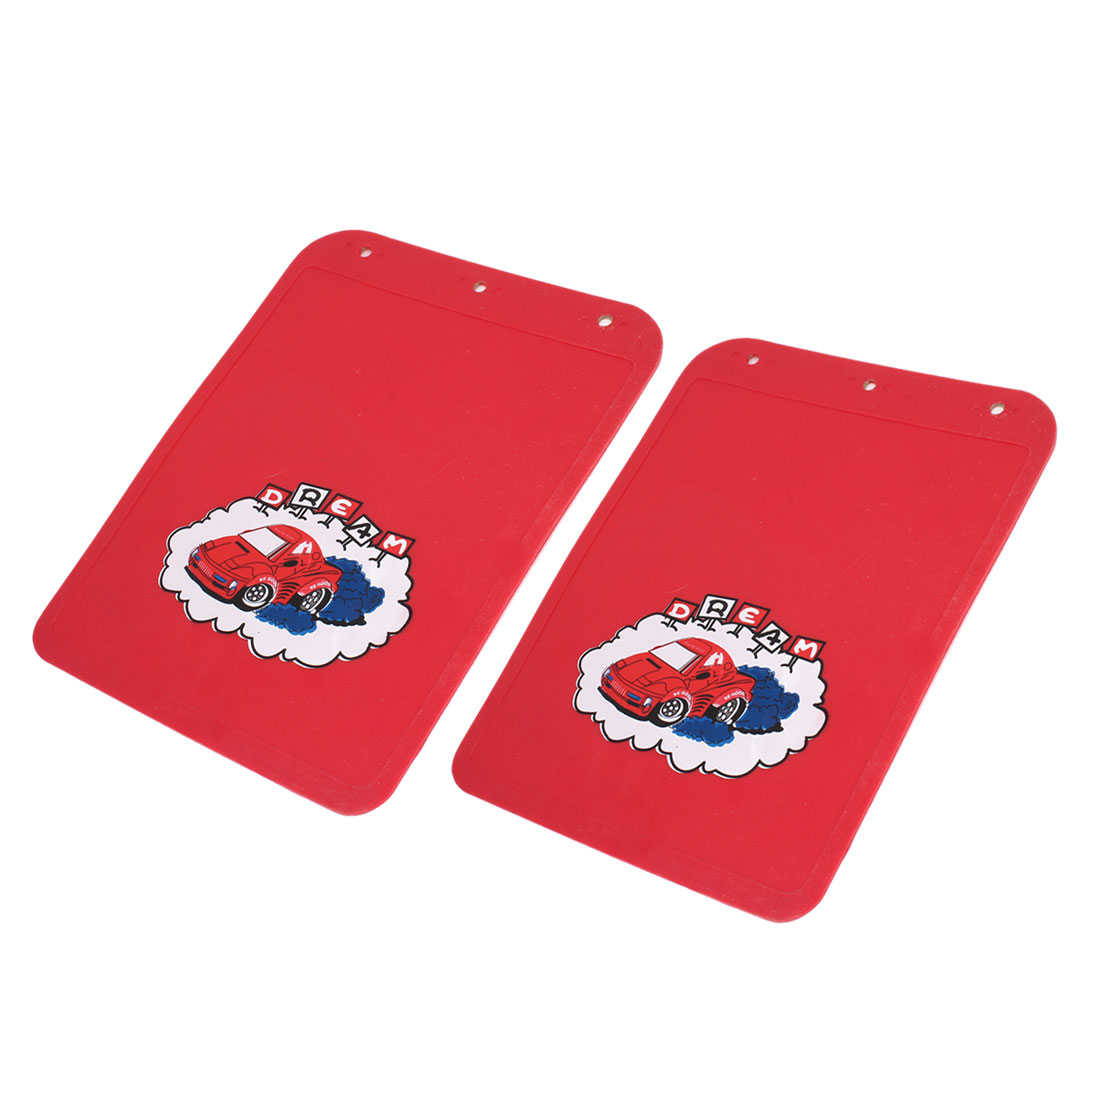 2 Pcs Car Pattern Rubber Splash Mudguard Red 32cm x 24cm